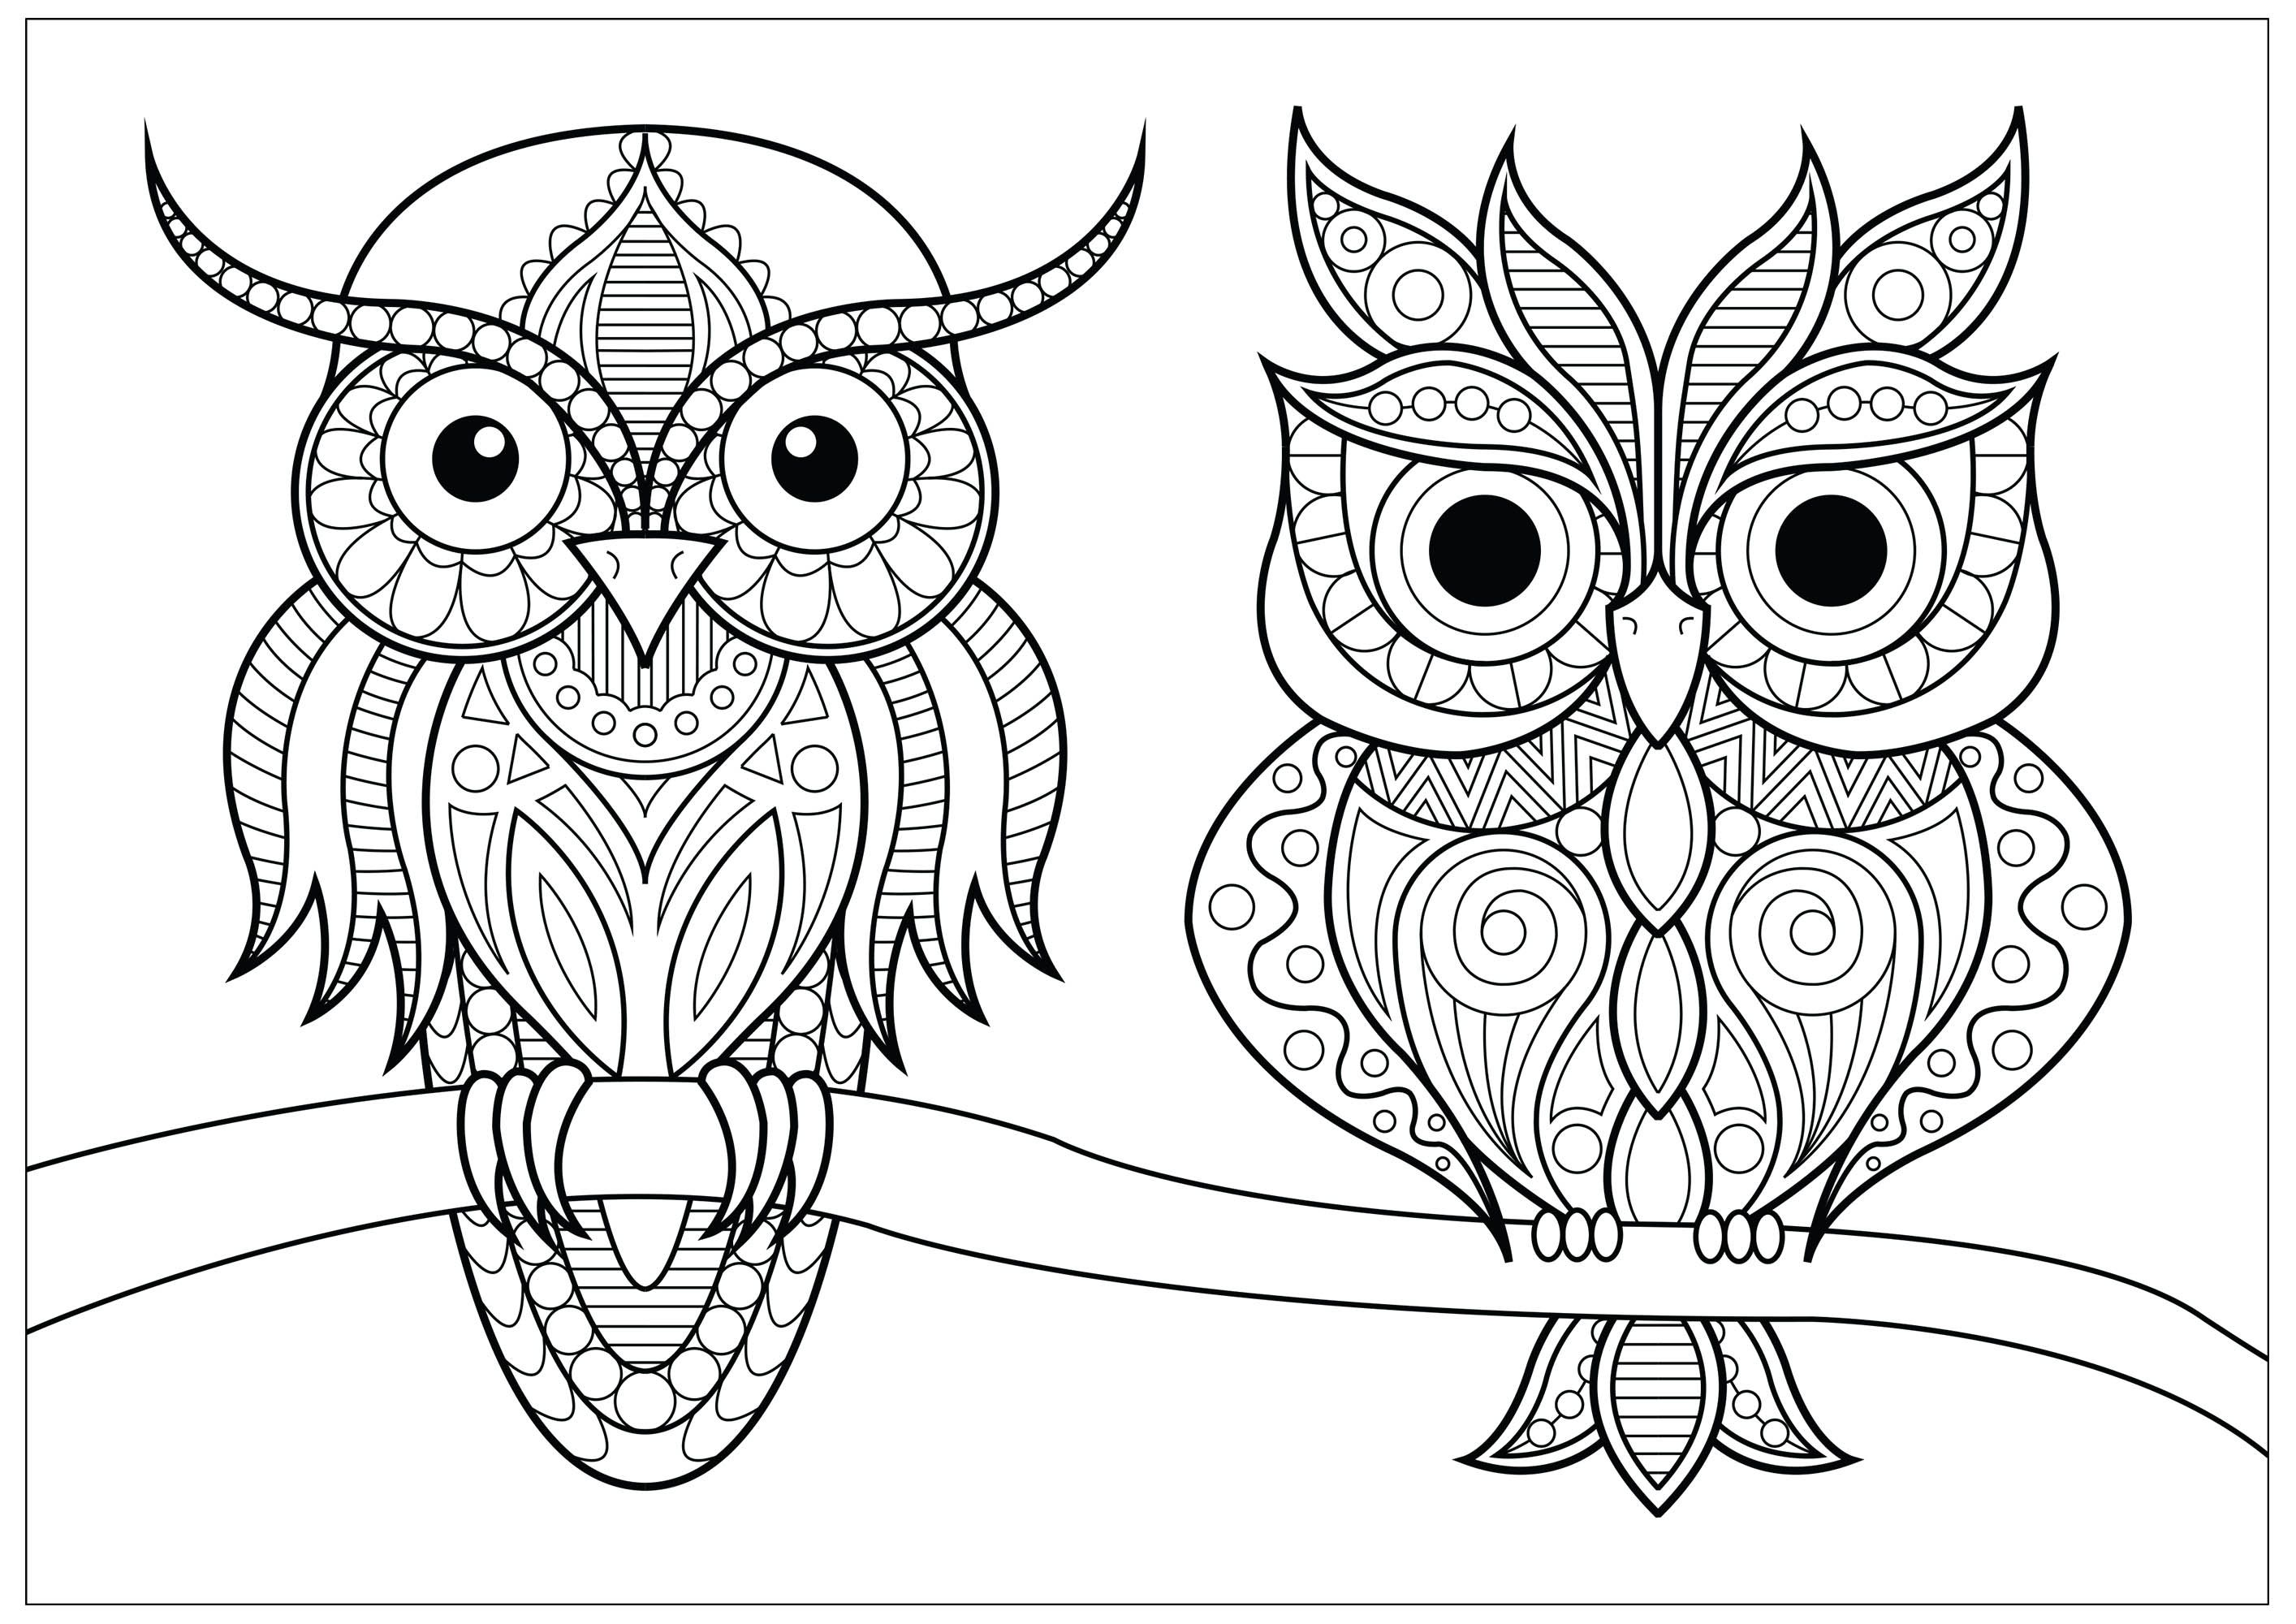 Two Owls With Simple Patterns On Branch Two Pretty And Calm Owls Resting On A Branch From Th In 2020 Owl Coloring Pages Animal Coloring Pages Unicorn Coloring Pages